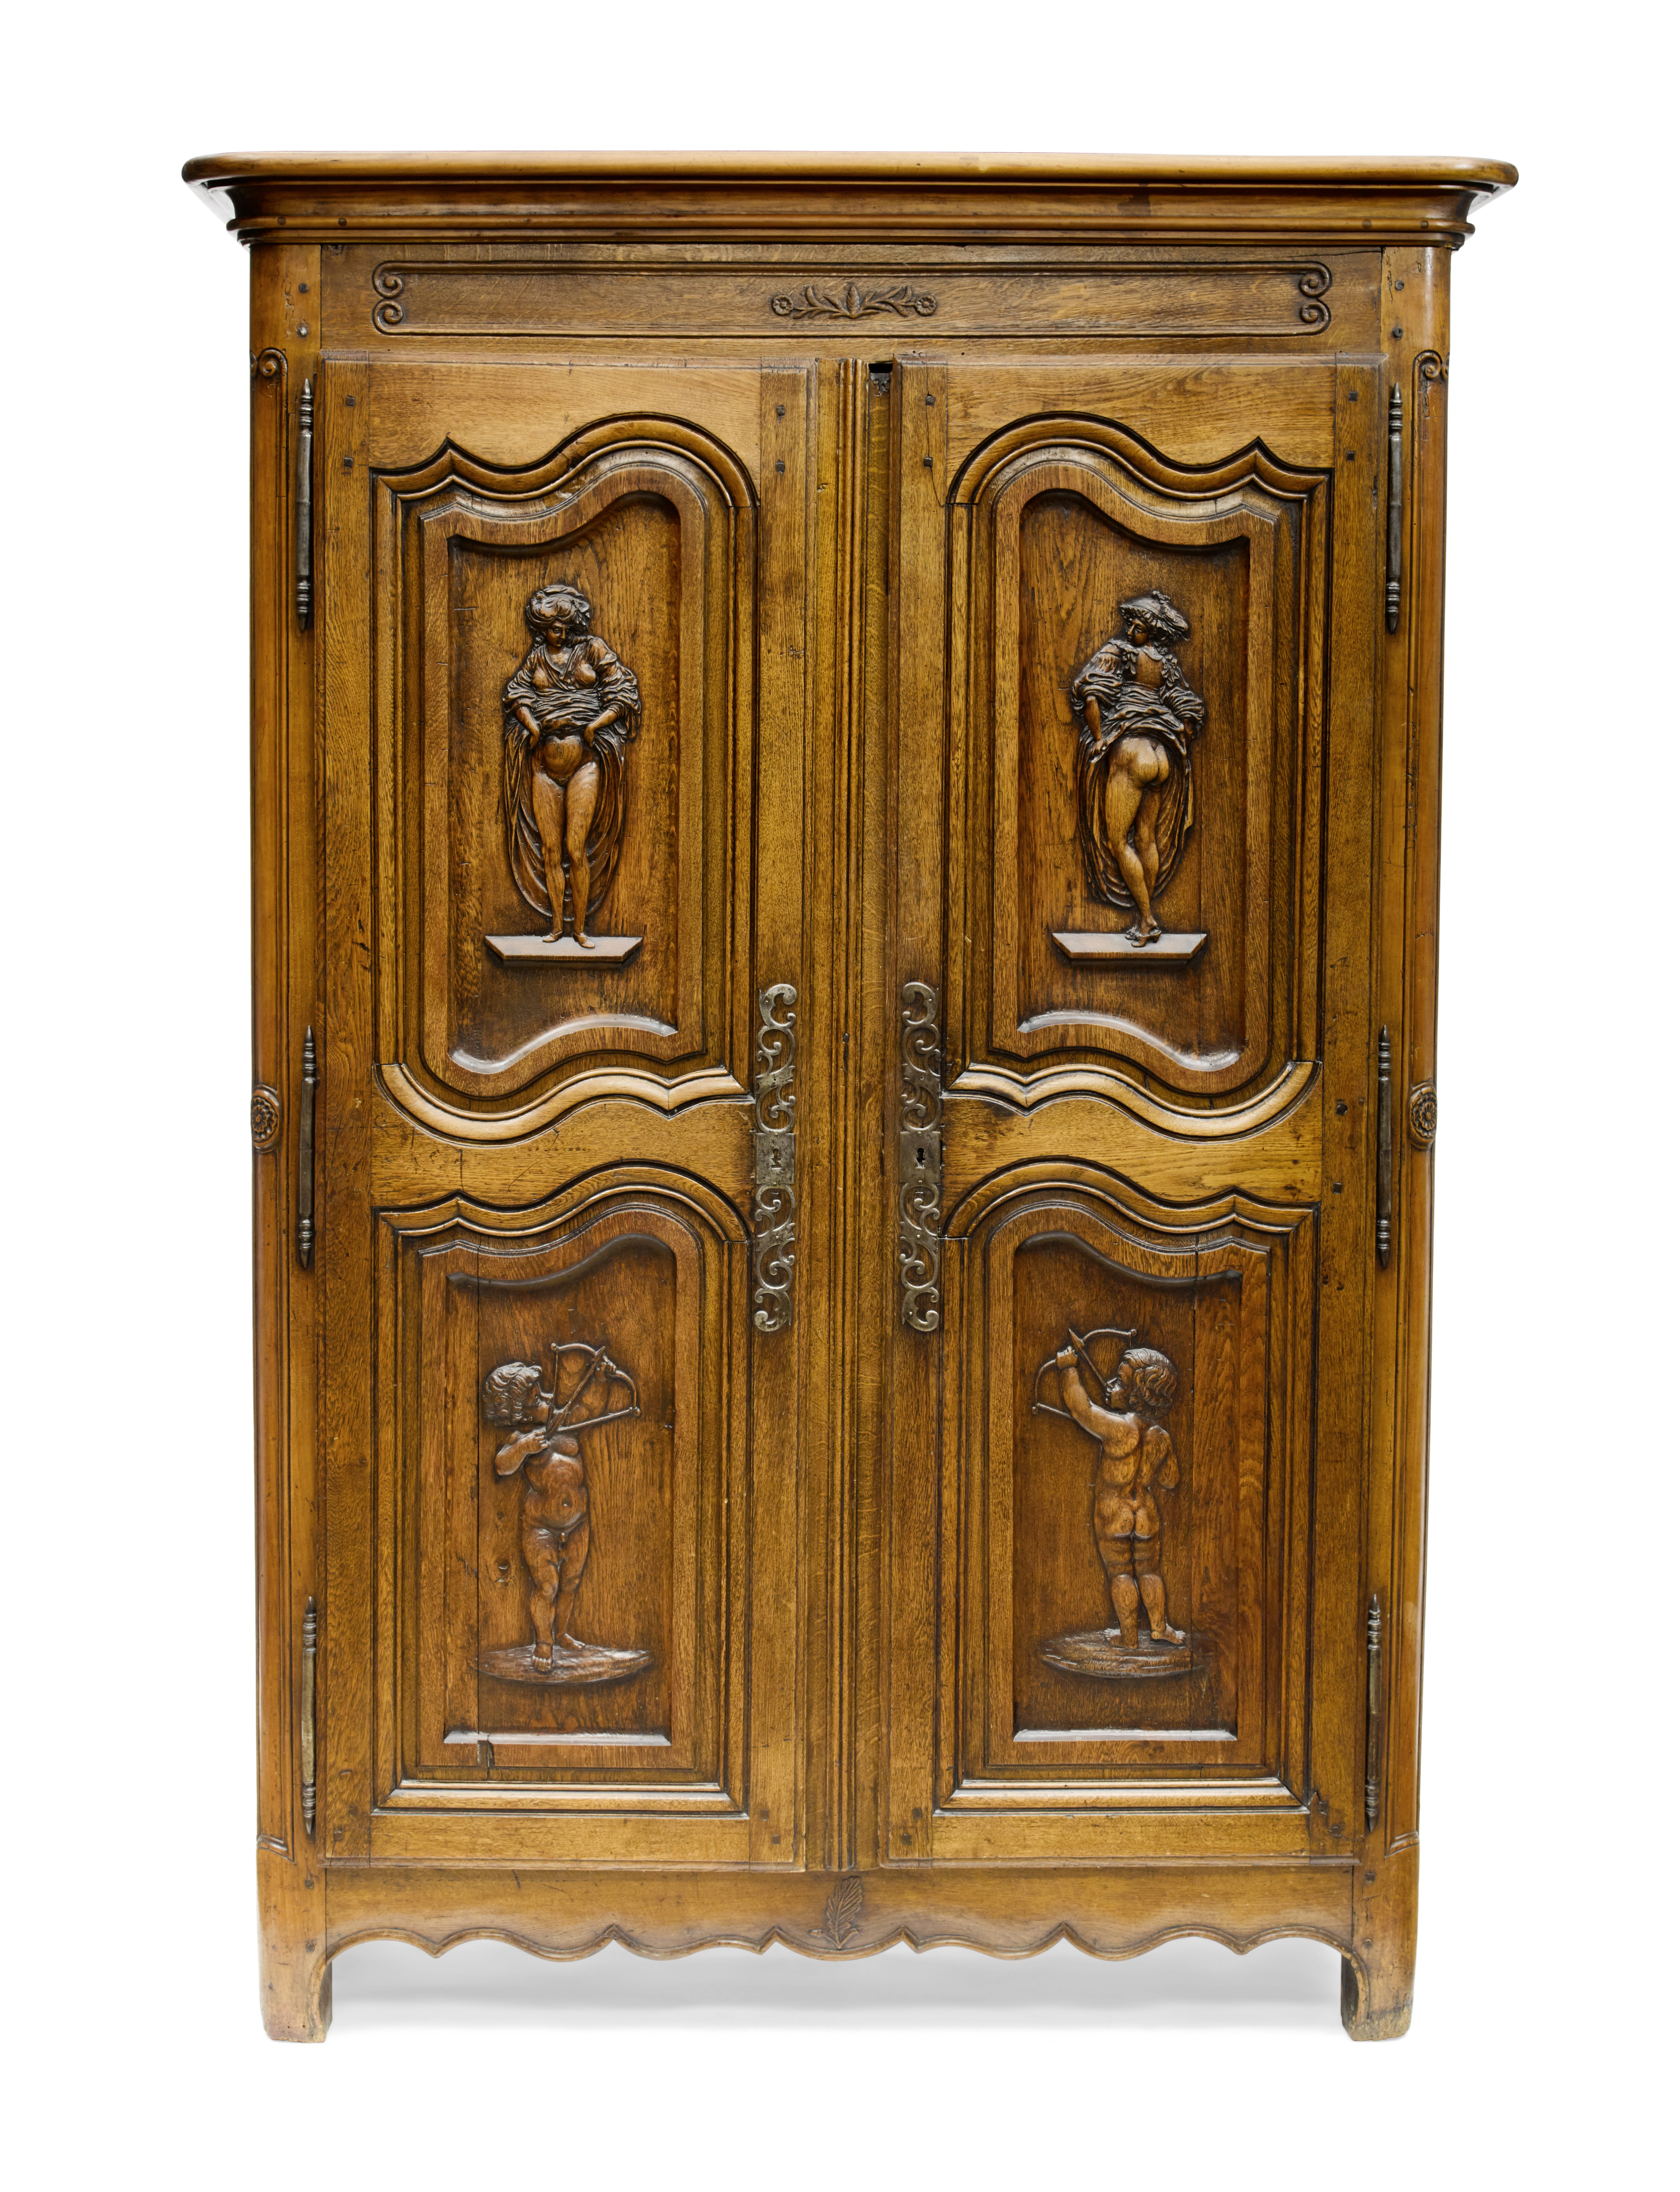 Lot 153 - A French Provincial Carved Oak and Fruitwood Armoire Late 18th century